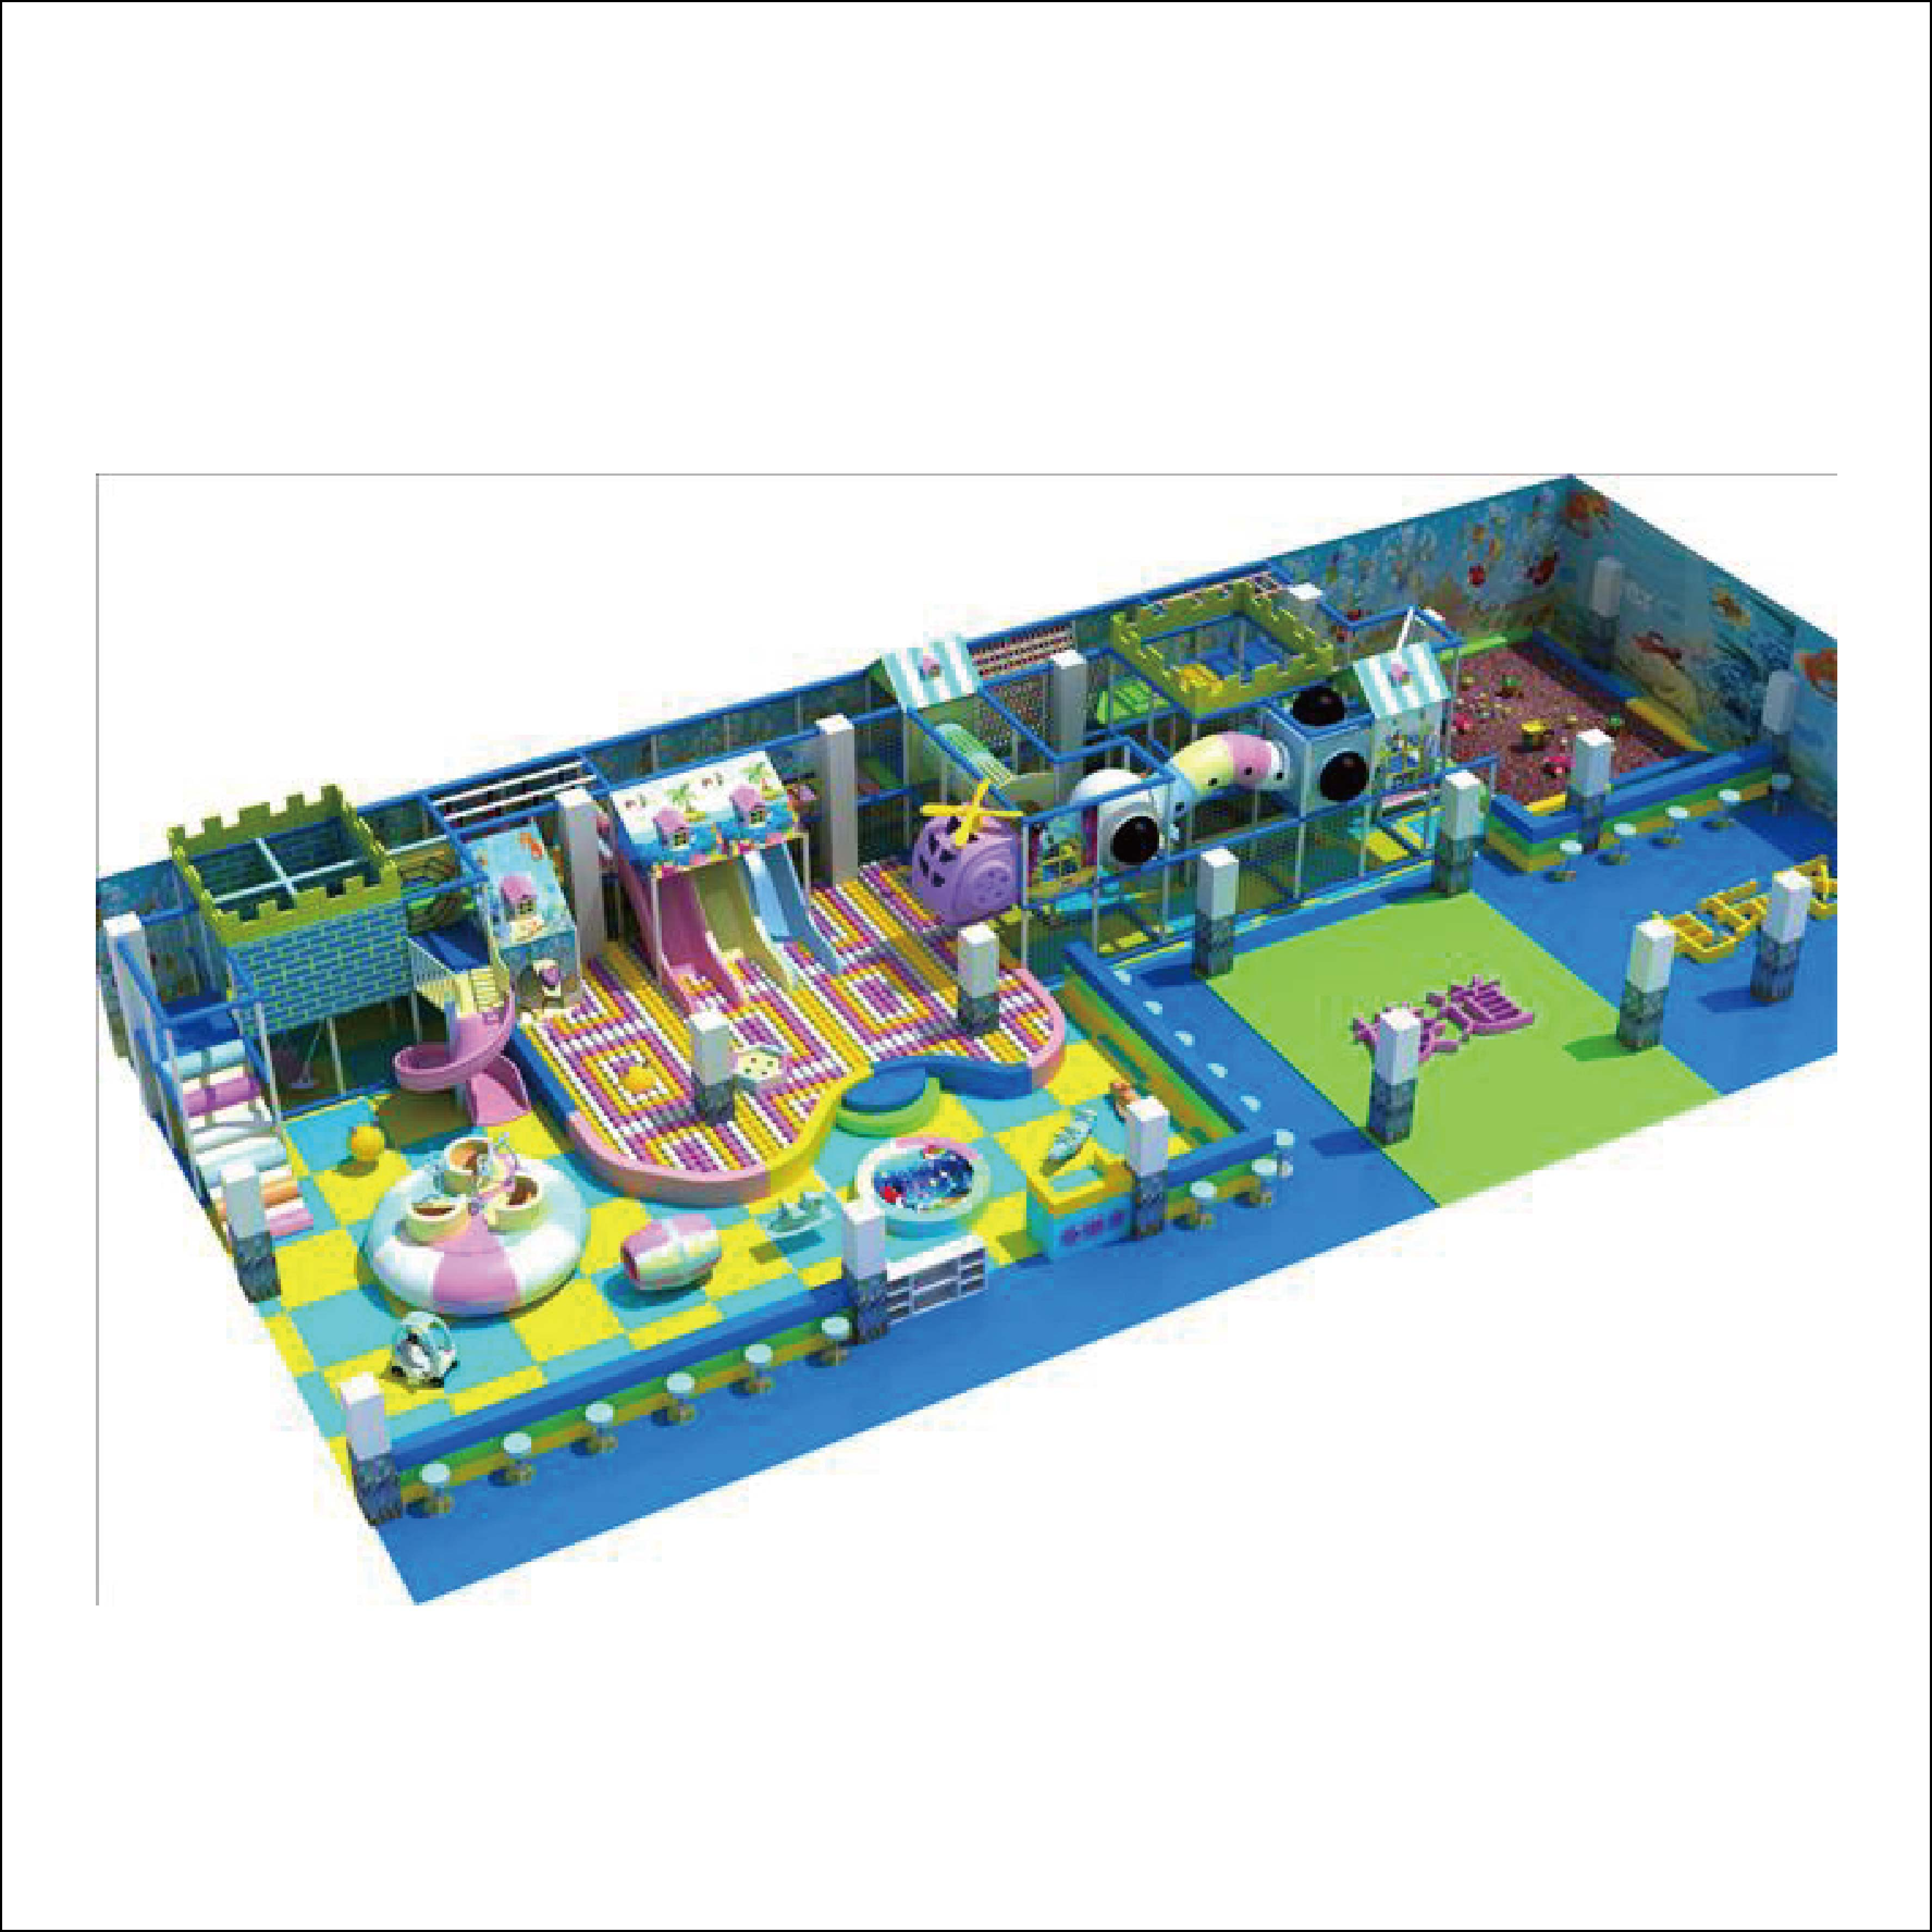 HLB-15019 Shopping Centre Kids Playground Mall Play Area Equipment